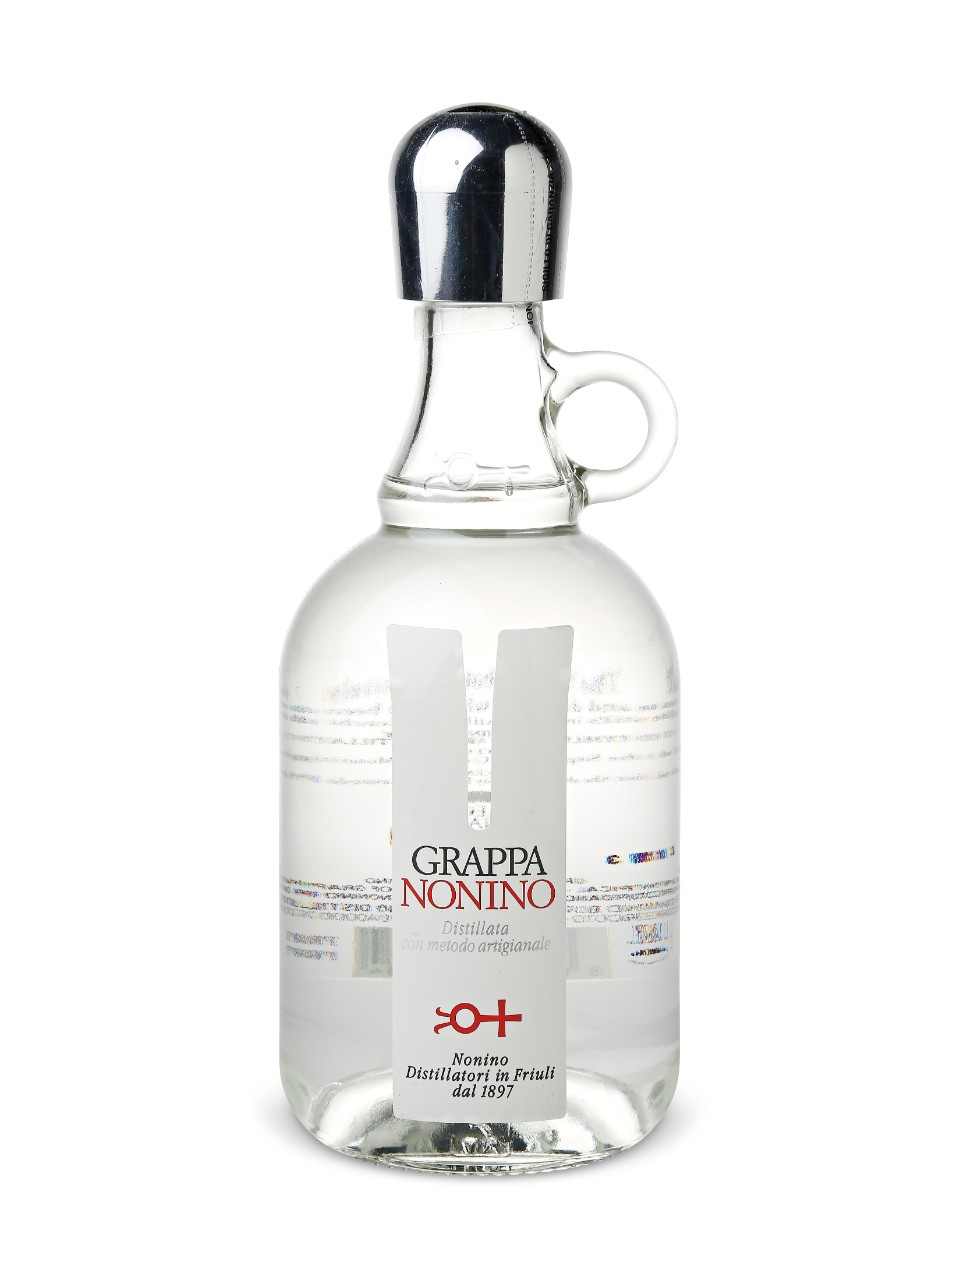 Image for Grappa Friulana Nonino from LCBO